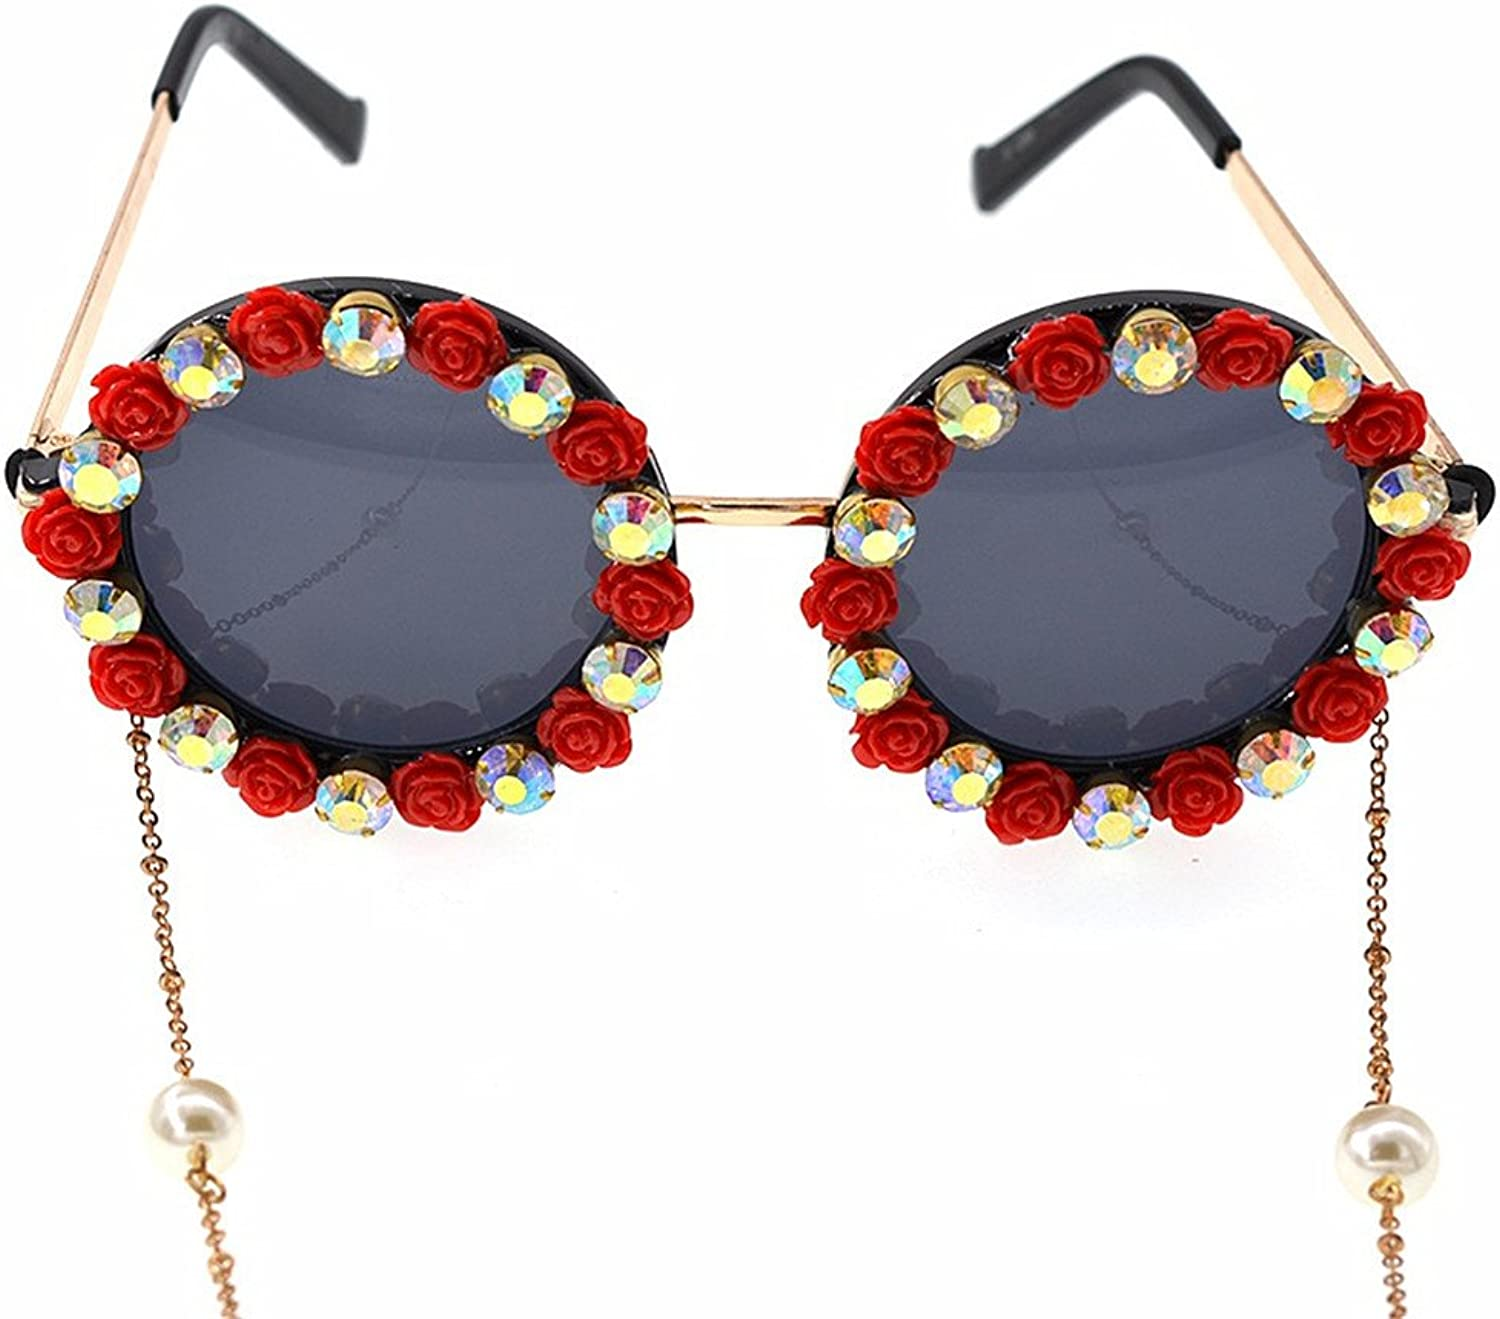 LIDESMUKG Romantic Red pink Handmade Metal gold Flower Baroque Sunglasses for Women Crystal Eyewear Retro Style Tassel Chain Sunglass